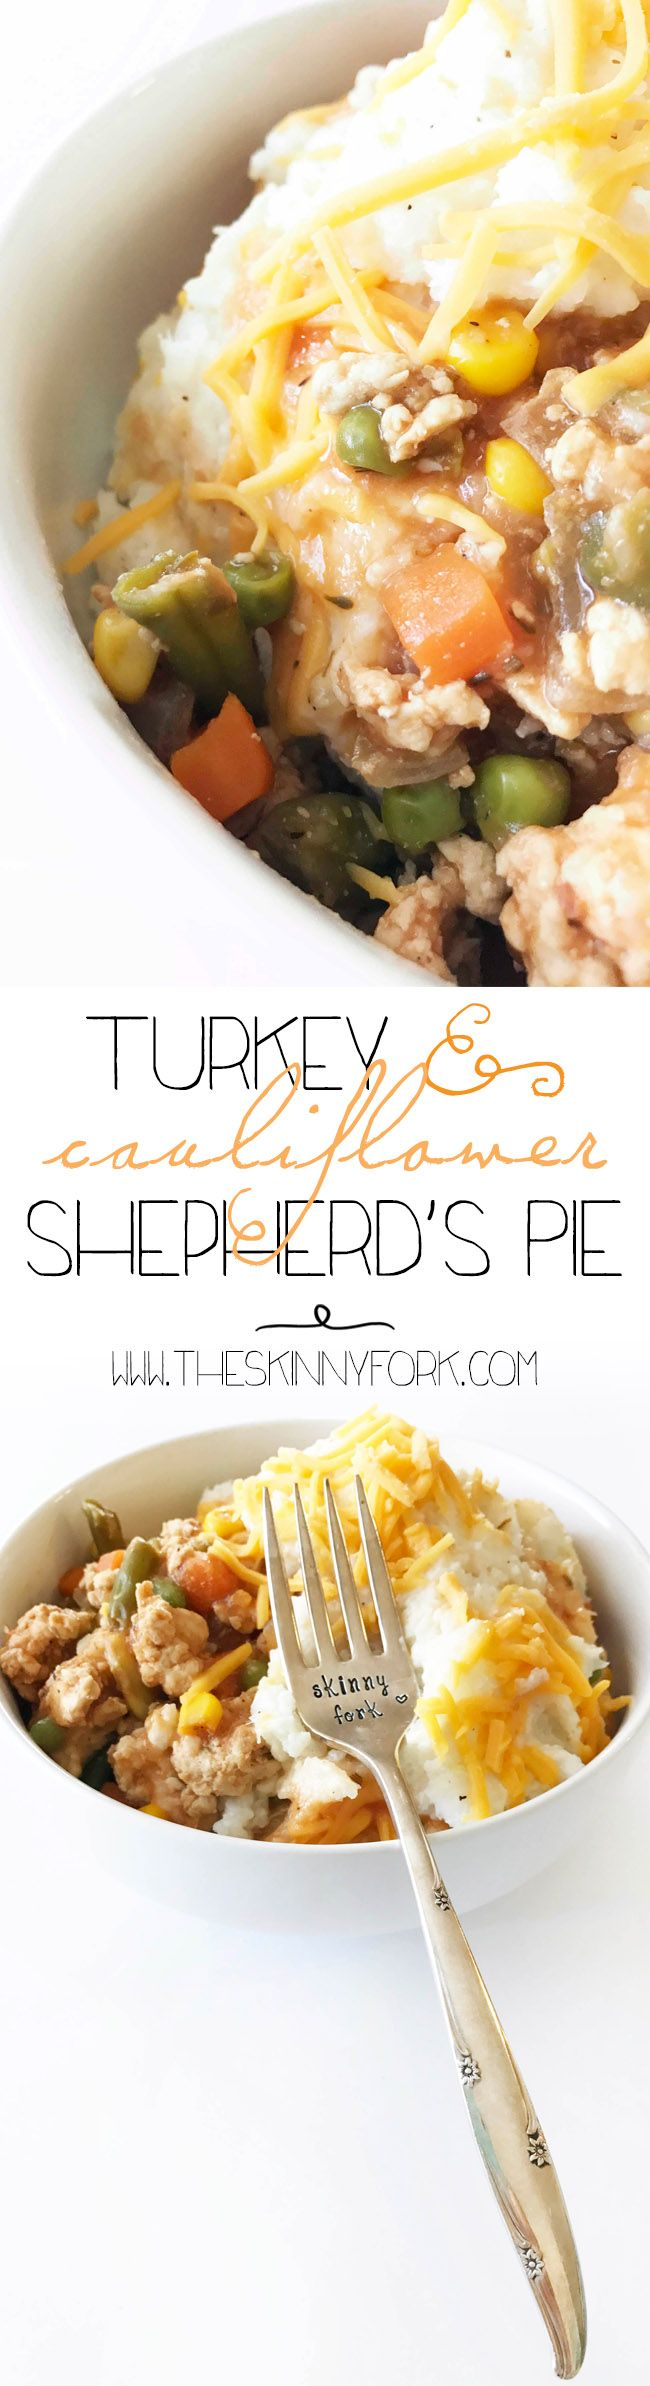 #Ad Check out this smart swap Turkey & Cauliflower Shepherd's Pie! It's #InspiredByYou with a cauliflower mash, plenty of veggies and lean ground turkey making the perfect #SmartMade style meal option. It's easy to make, tasty, clean, lean and guilt-free! Repin for a chance to see a similar @smartmade0201 meal in your freezer aisle @AOL_Lifestyle TheSkinnyFork.com | Skinny & Healthy Recipes